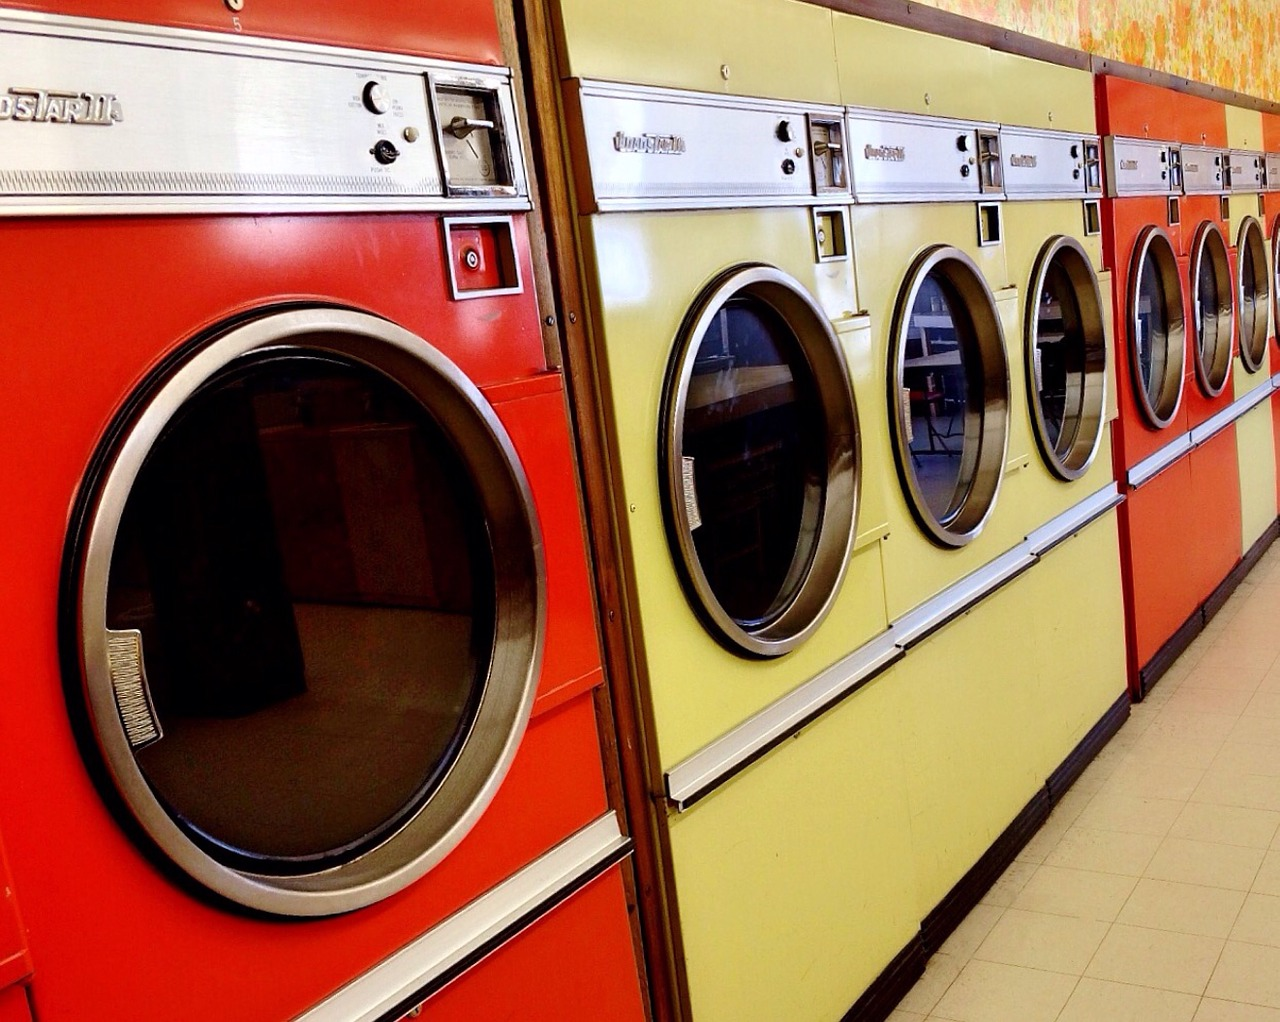 Commercial Laundry Sales at Eastleigh Services